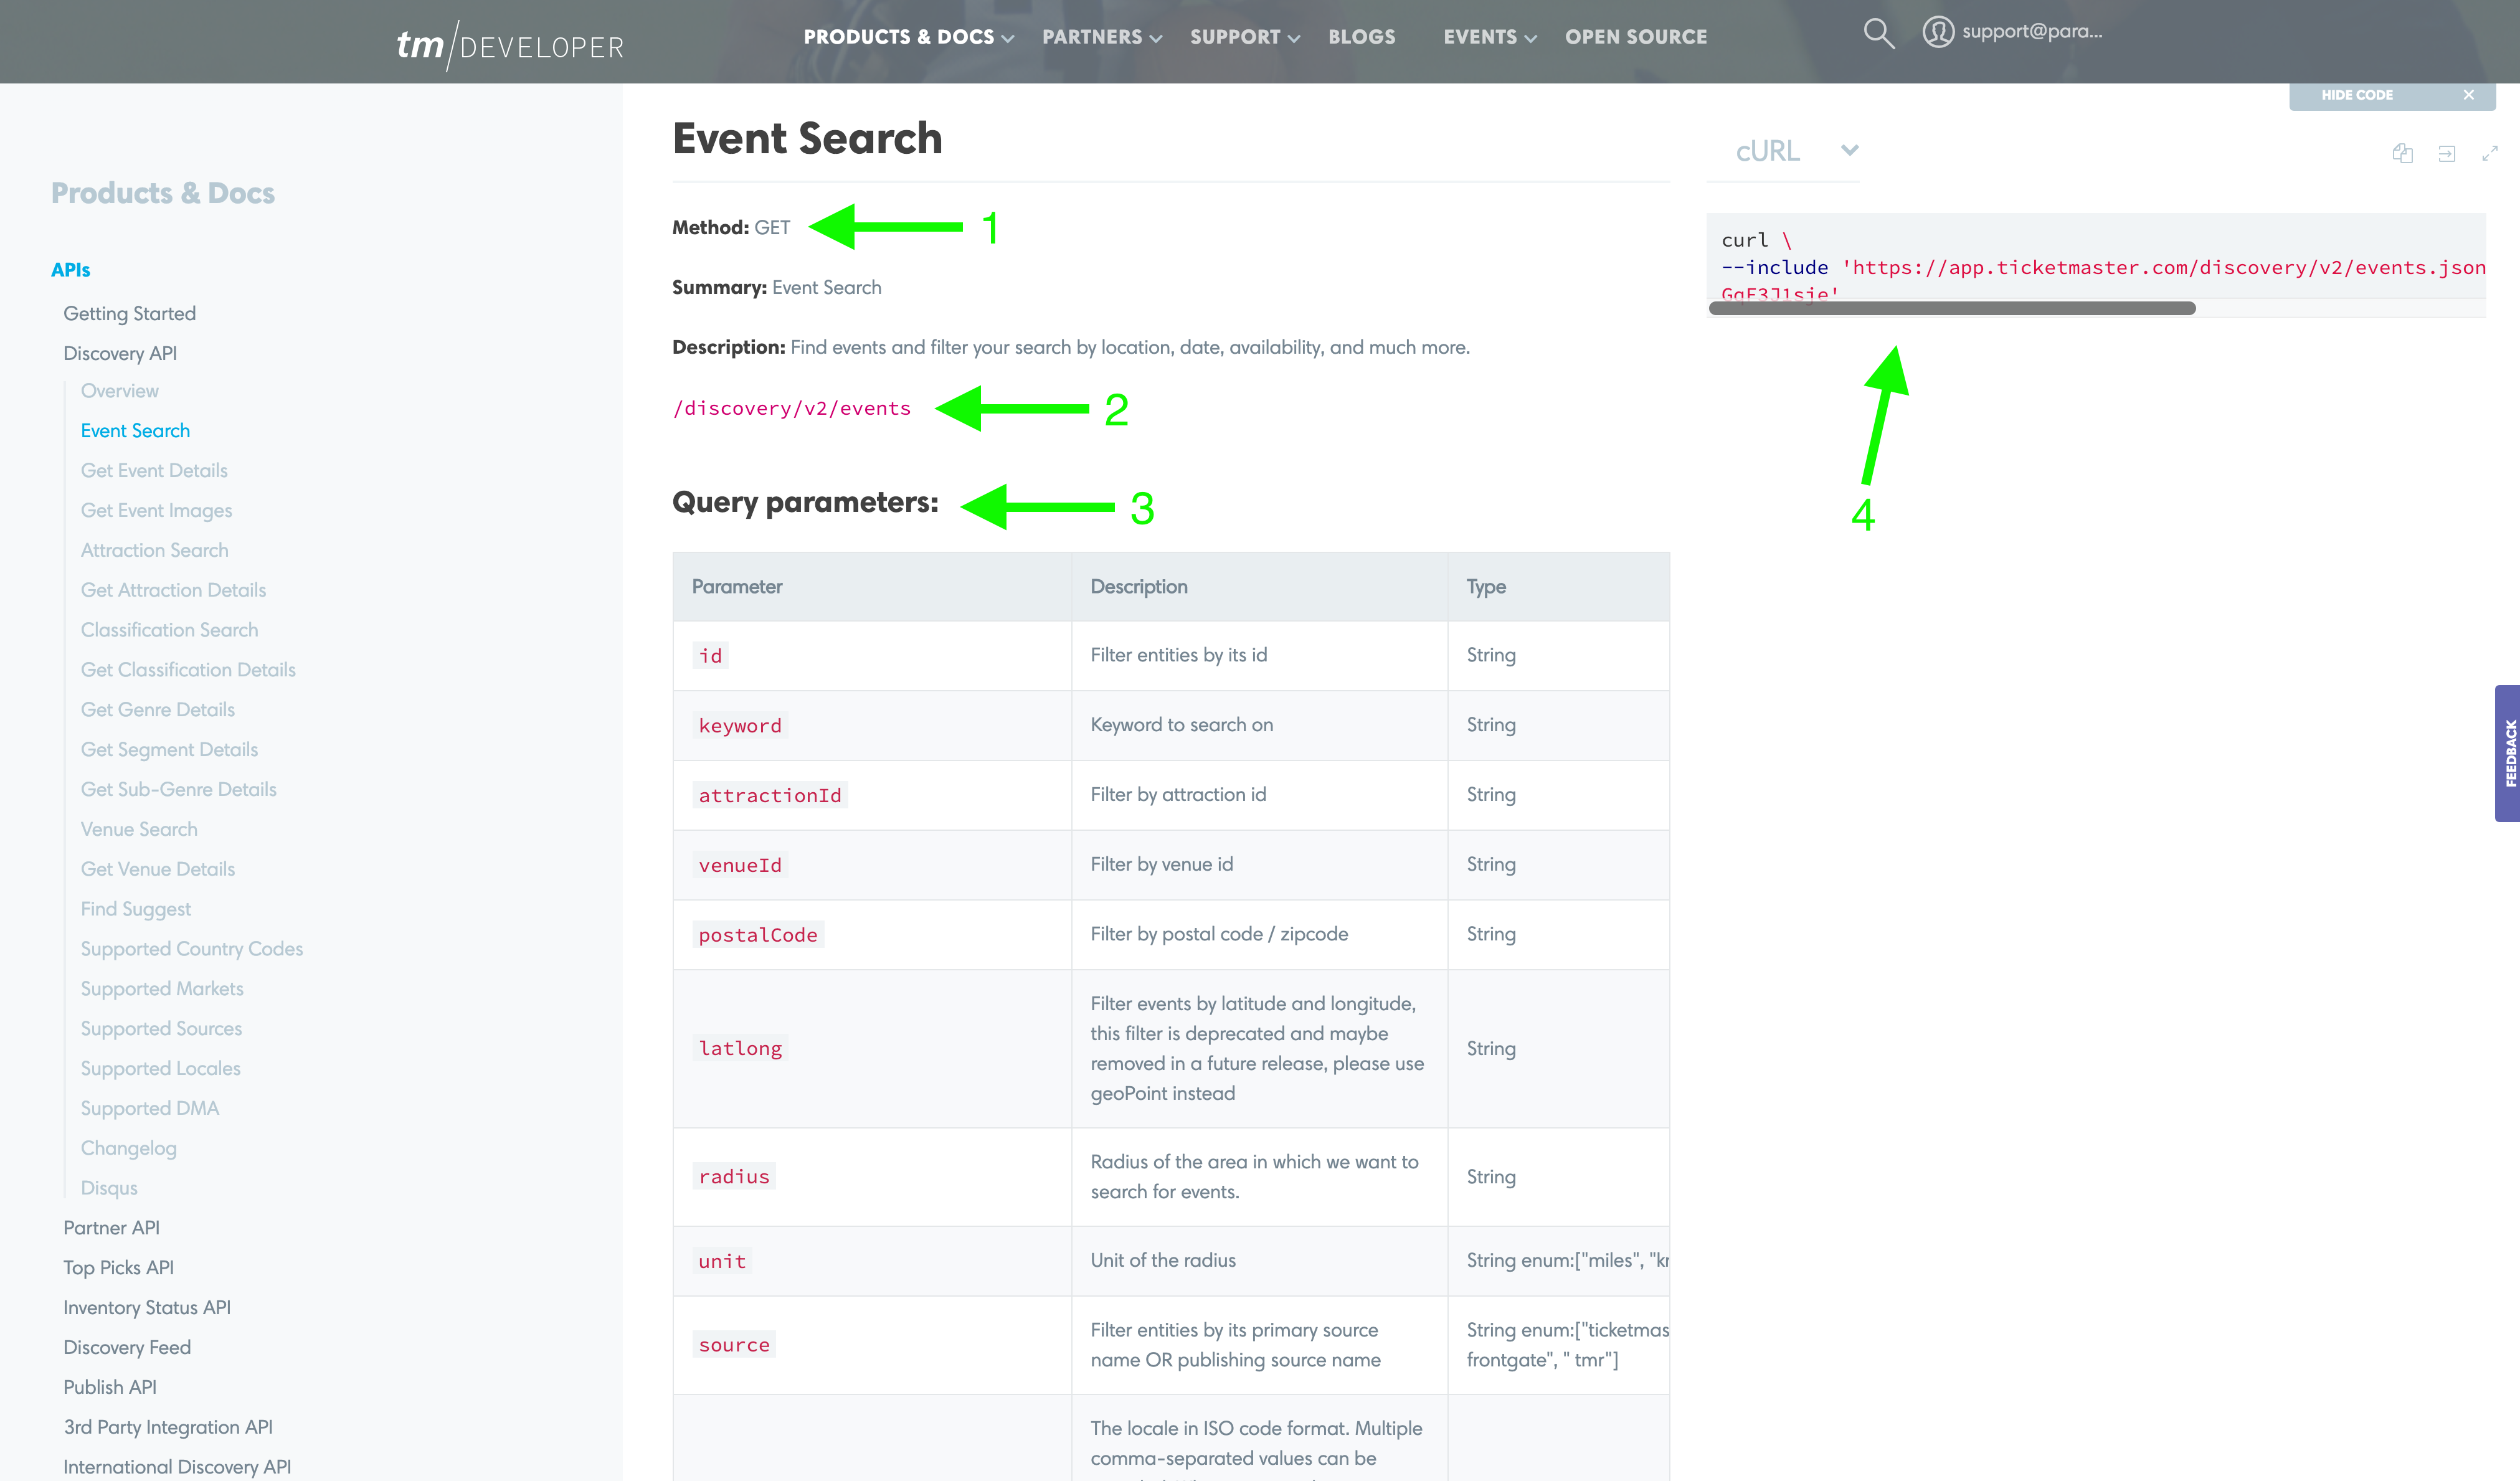 The Event Search endpoint detail page